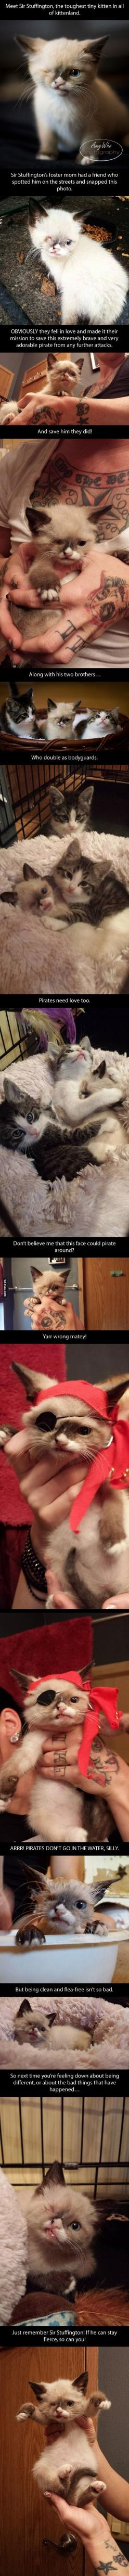 Meet Sir Stuffington, The Cutest Pirate In The World: Cutest Pirate, Guy, Pirate Kitten, Cat Lady, Animal